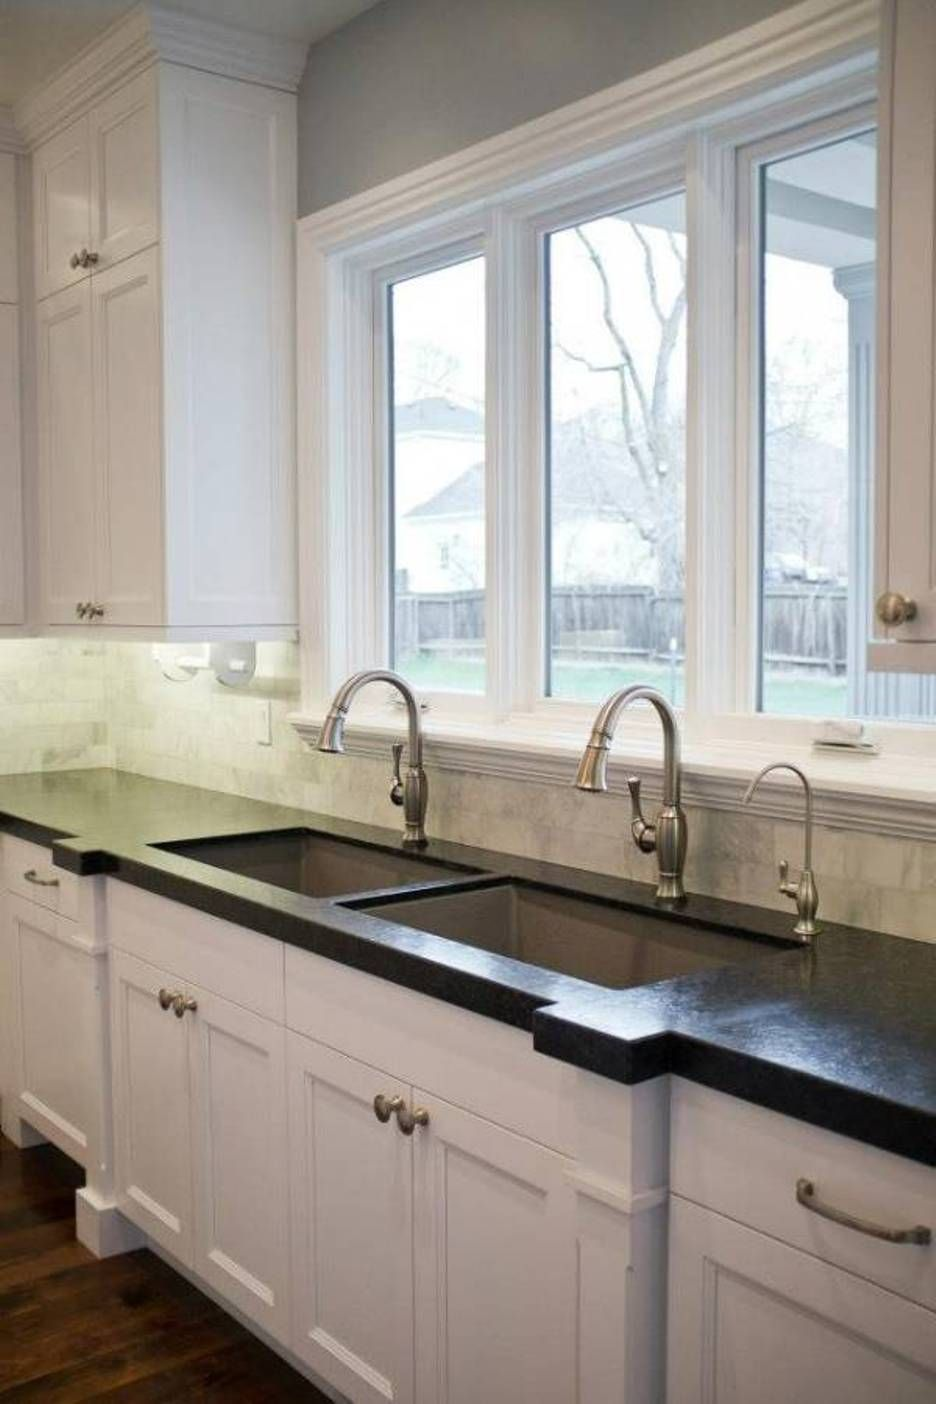 white-cabinets-and-double-kitchen-sink.jpg 936 × 1 404 pixels